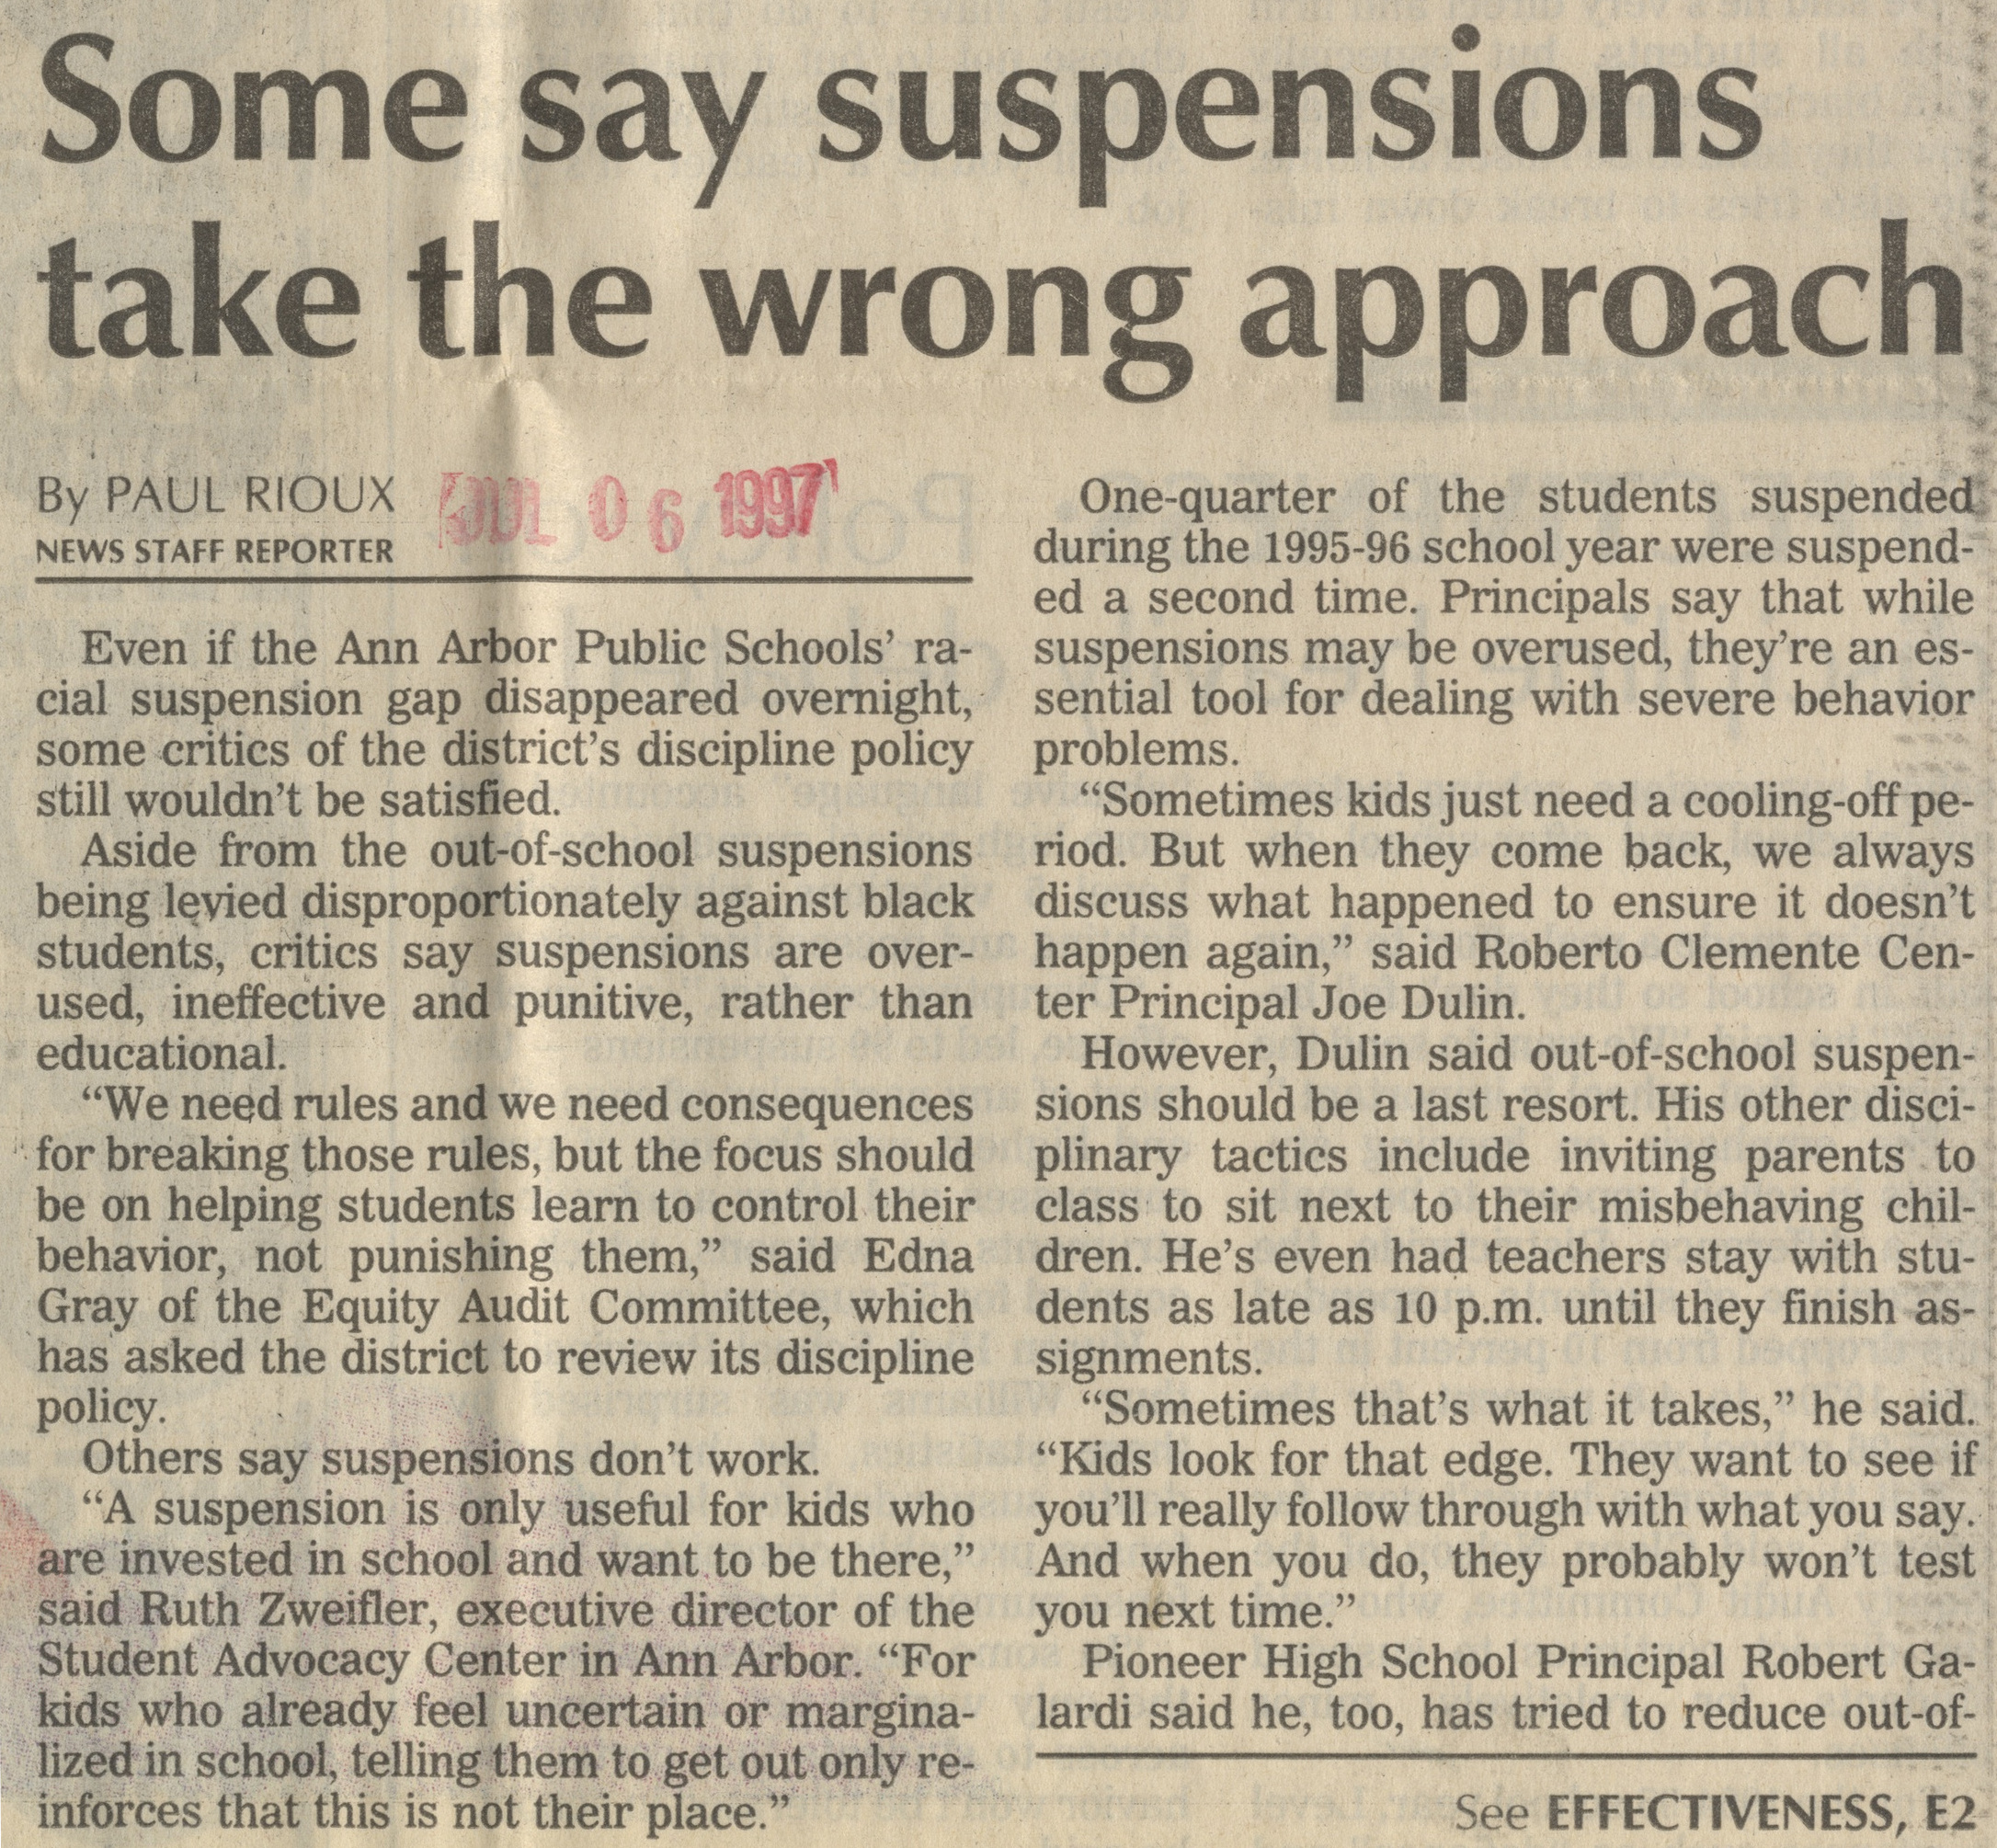 Some Say Suspensions Take The Wrong Approach image